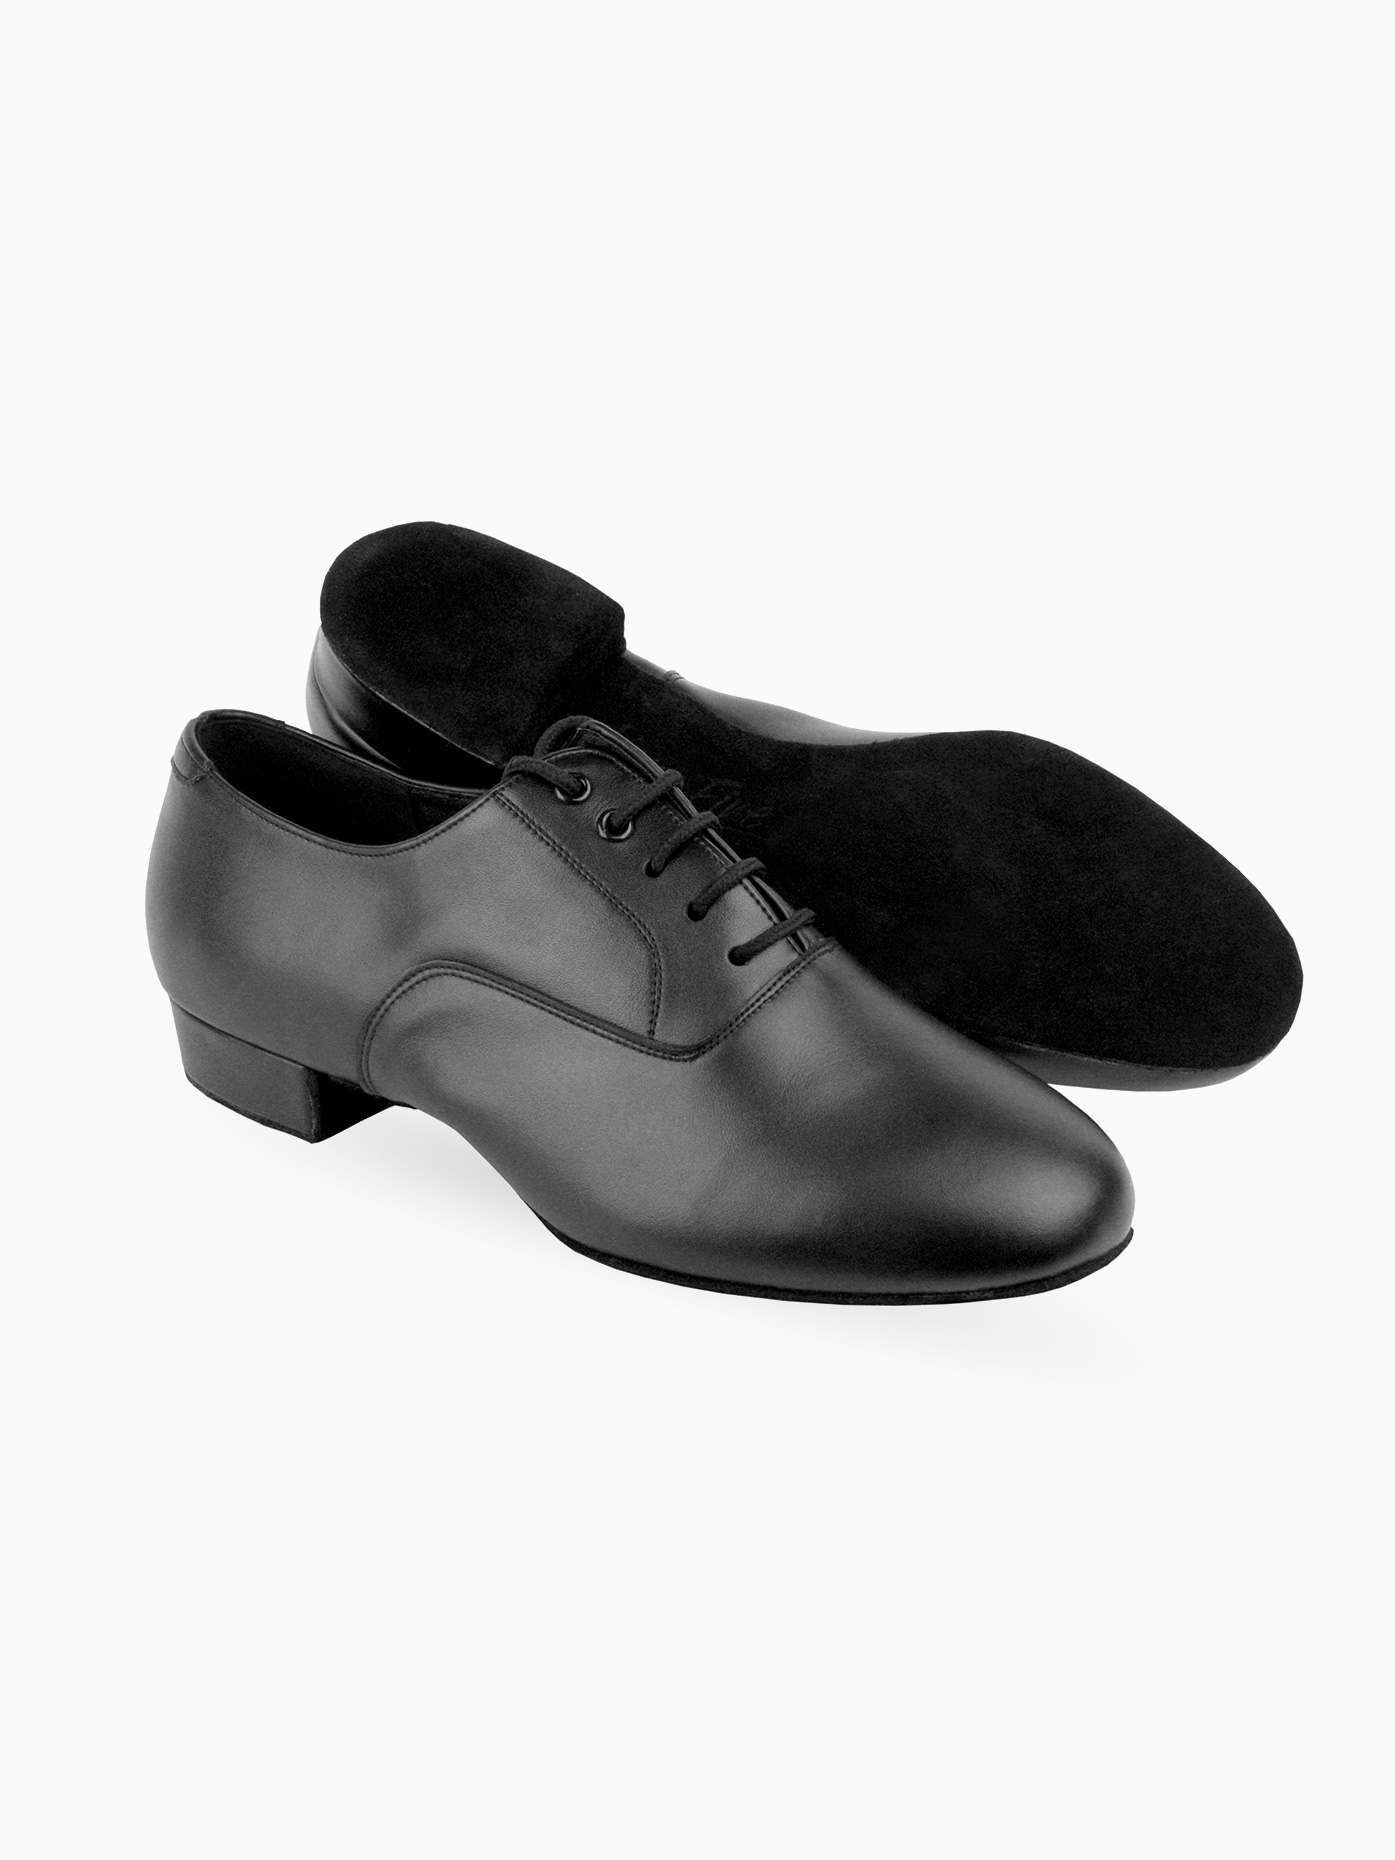 Very Fine Shoes Mens Standard-Classic Series Ballroom Shoes 919101